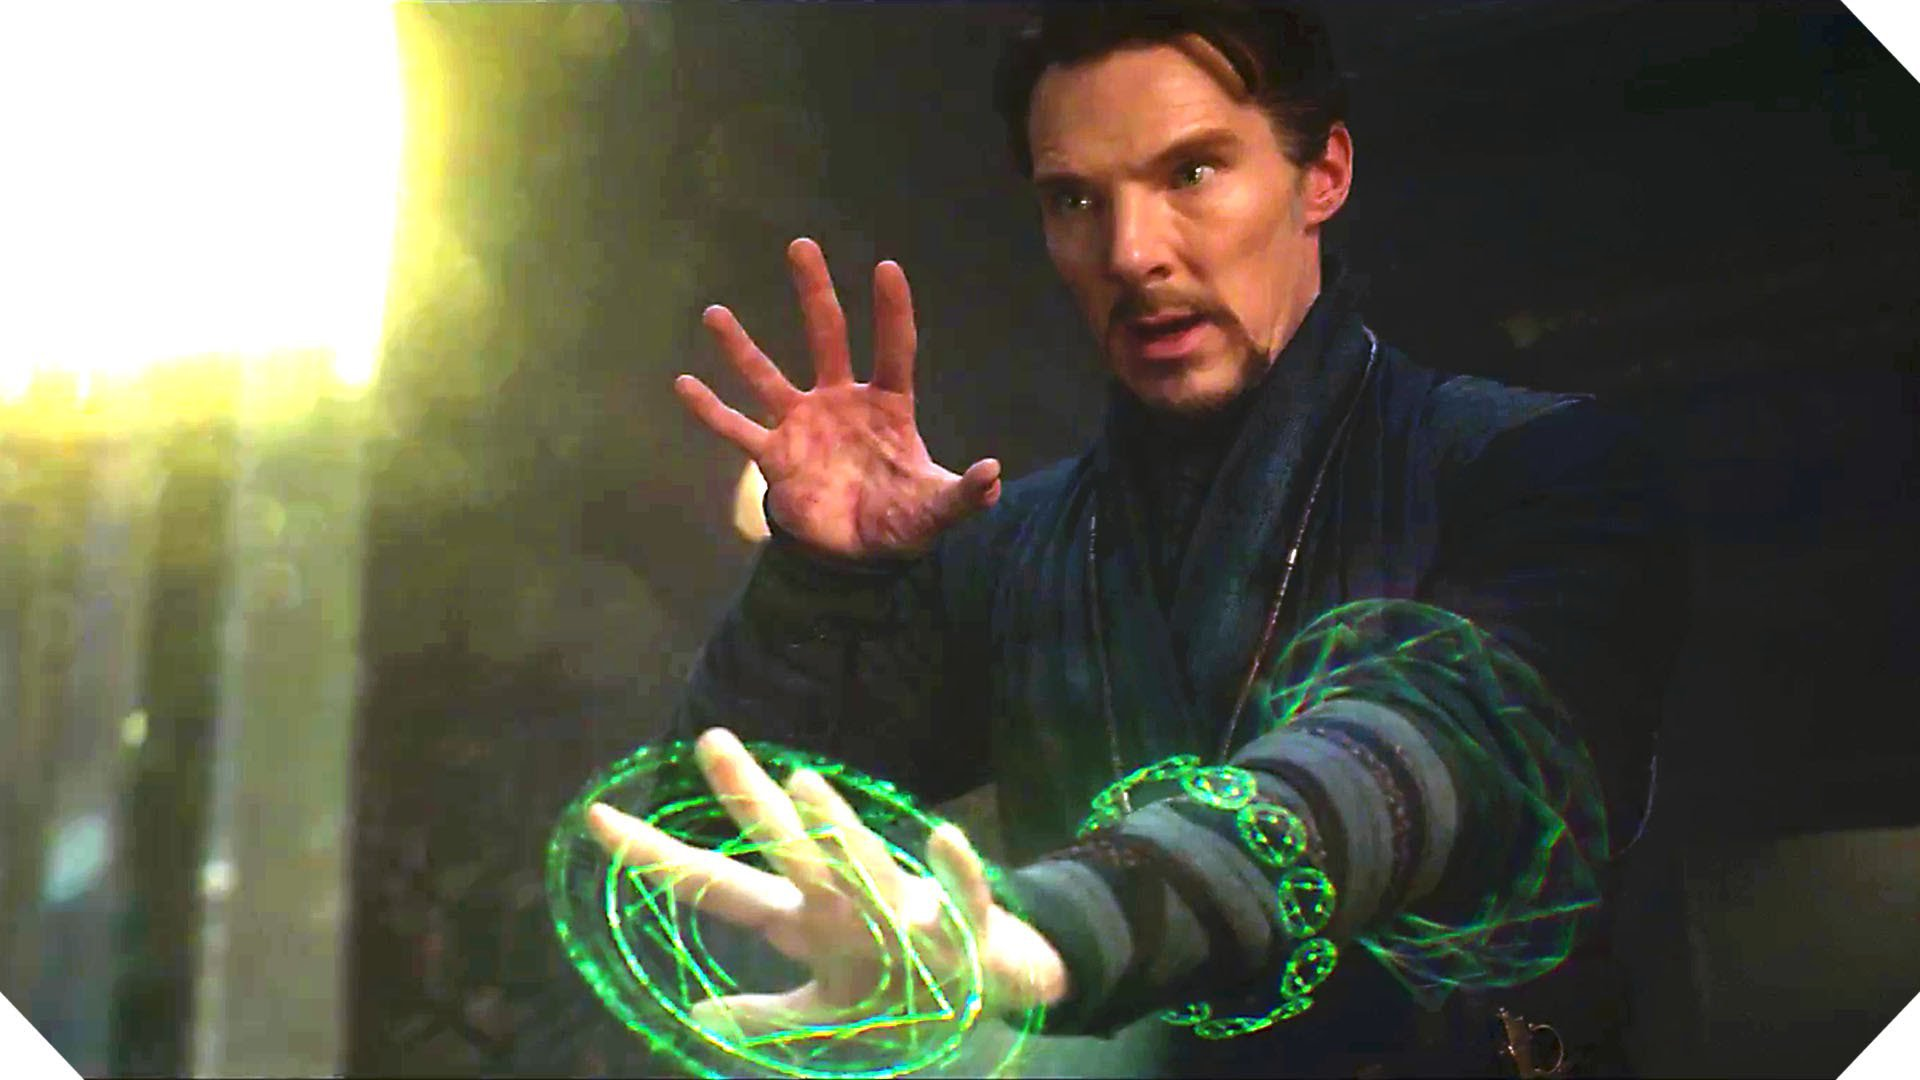 Doctor Strange Marvel Movie Wallpapers Widescreen Cinema: Before You Watch Dr Strange, Here's Everything You Need To